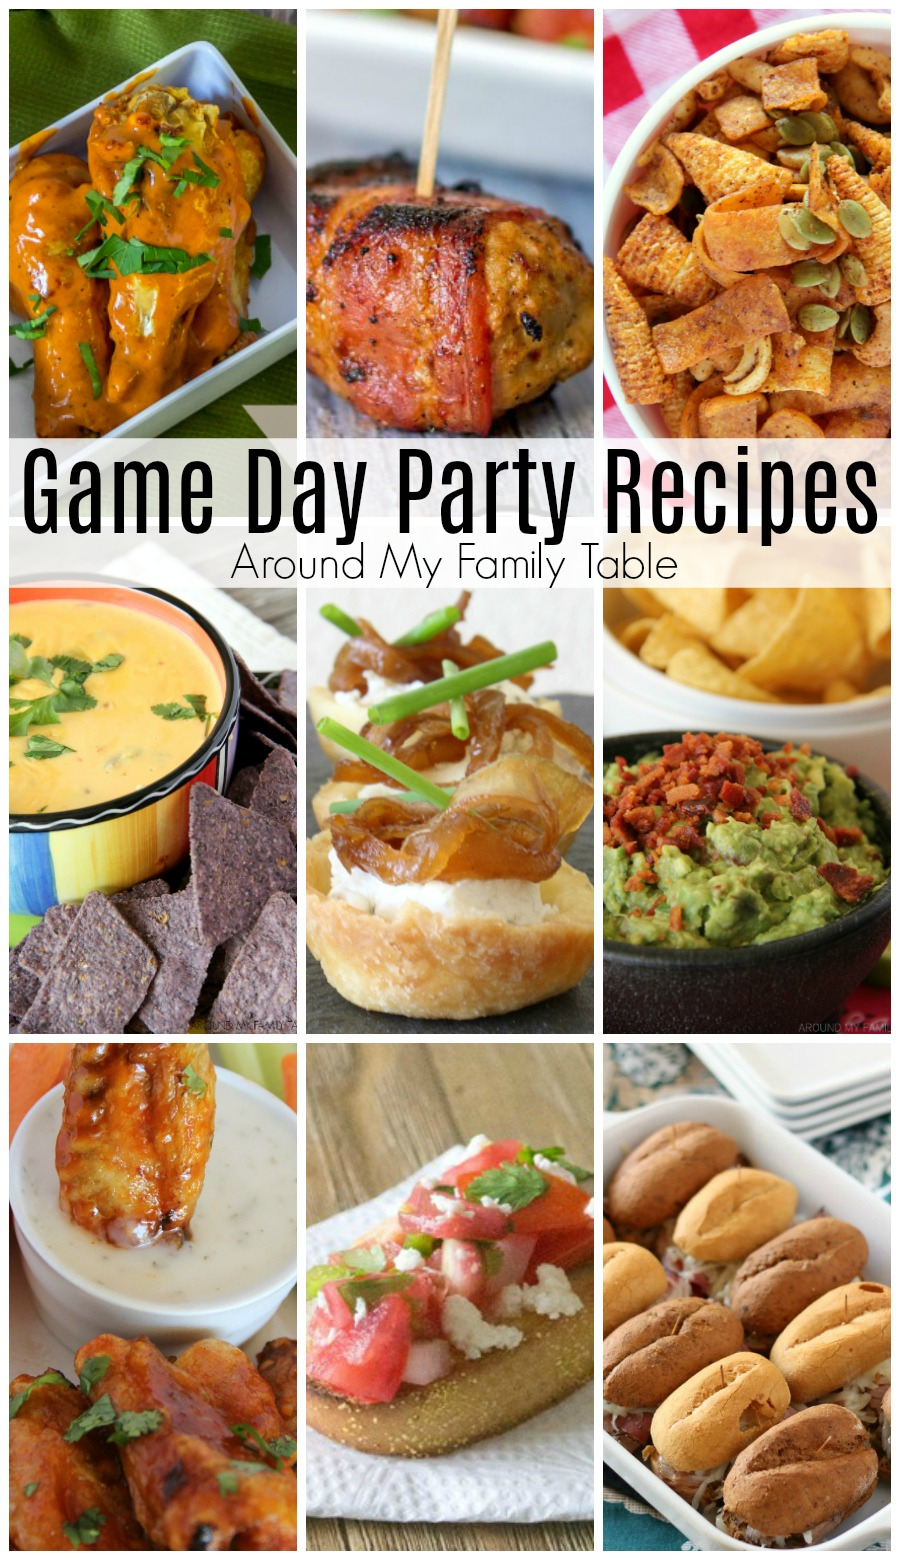 The best Game Day Party Recipes are here just in time for the biggest game of the year.No party is complete without a wide assortment of delicious food that will keep the gang headed back to the kitchen for more. These are the recipes that my friends ask me to make over and over again for our parties. #gameday #superbowl